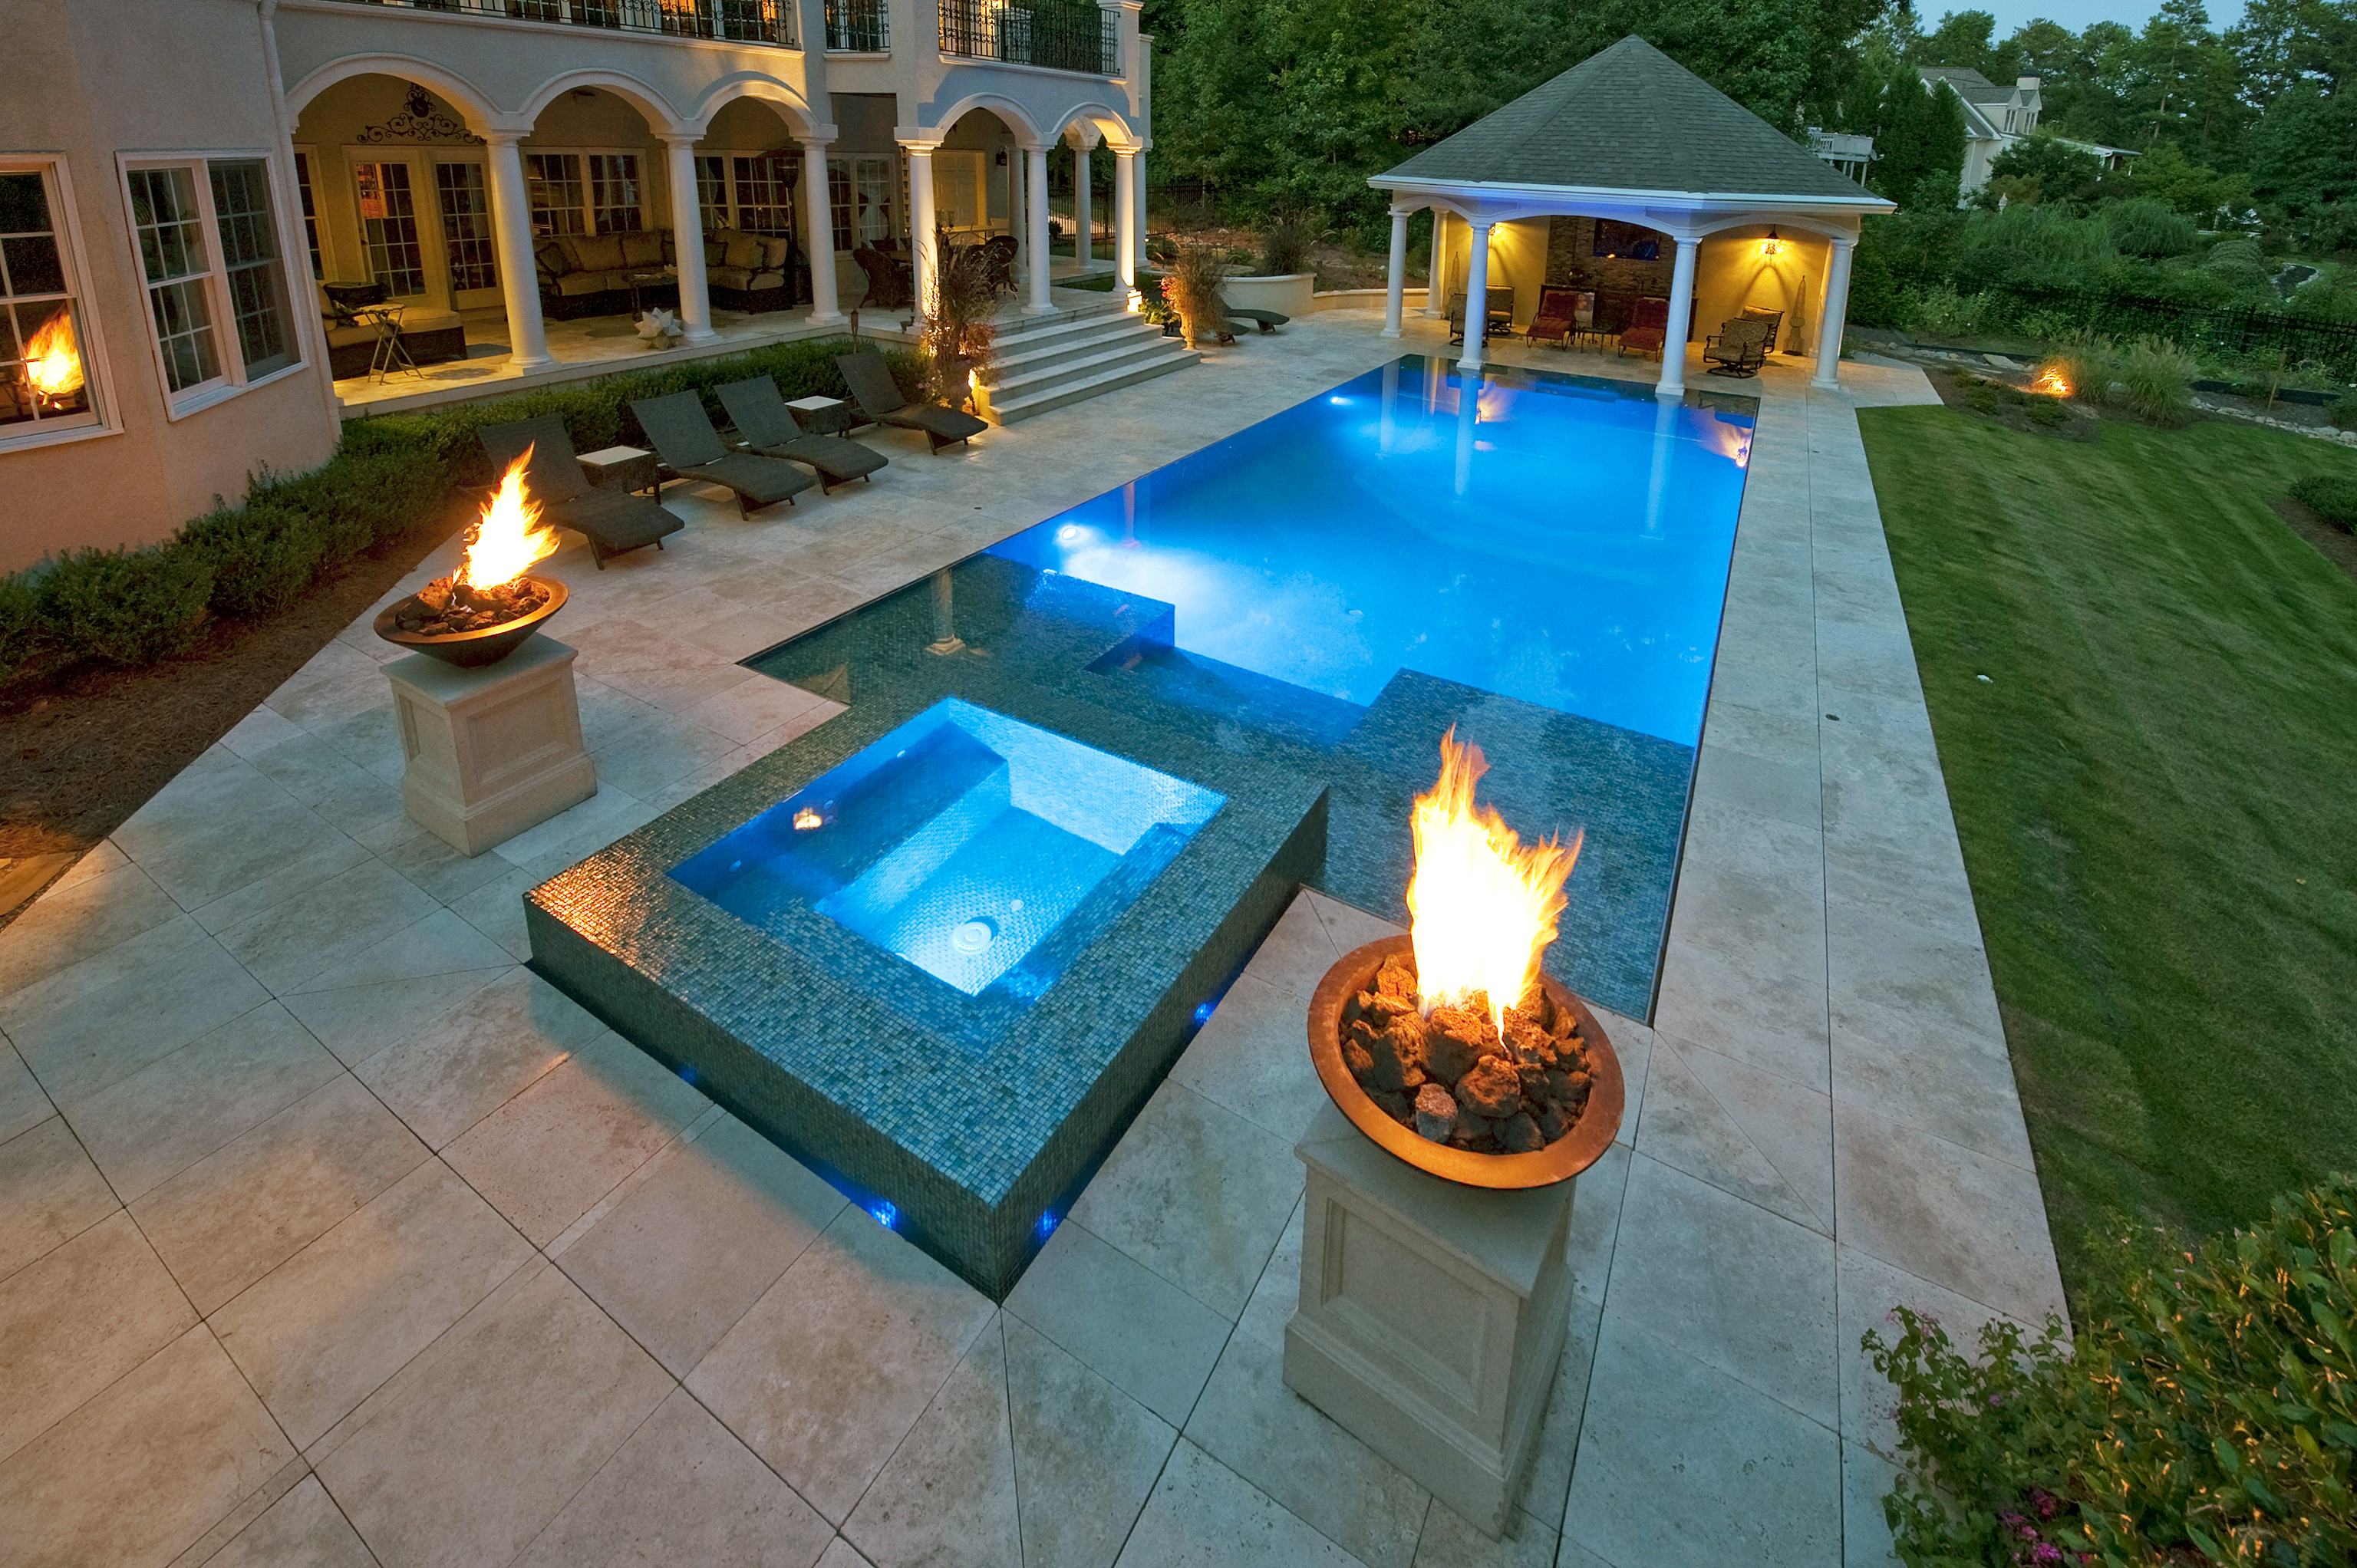 Travertine Tile Pool Noce Travertine Bullnose Pool Coping Tiles Tumbled And Unfilled